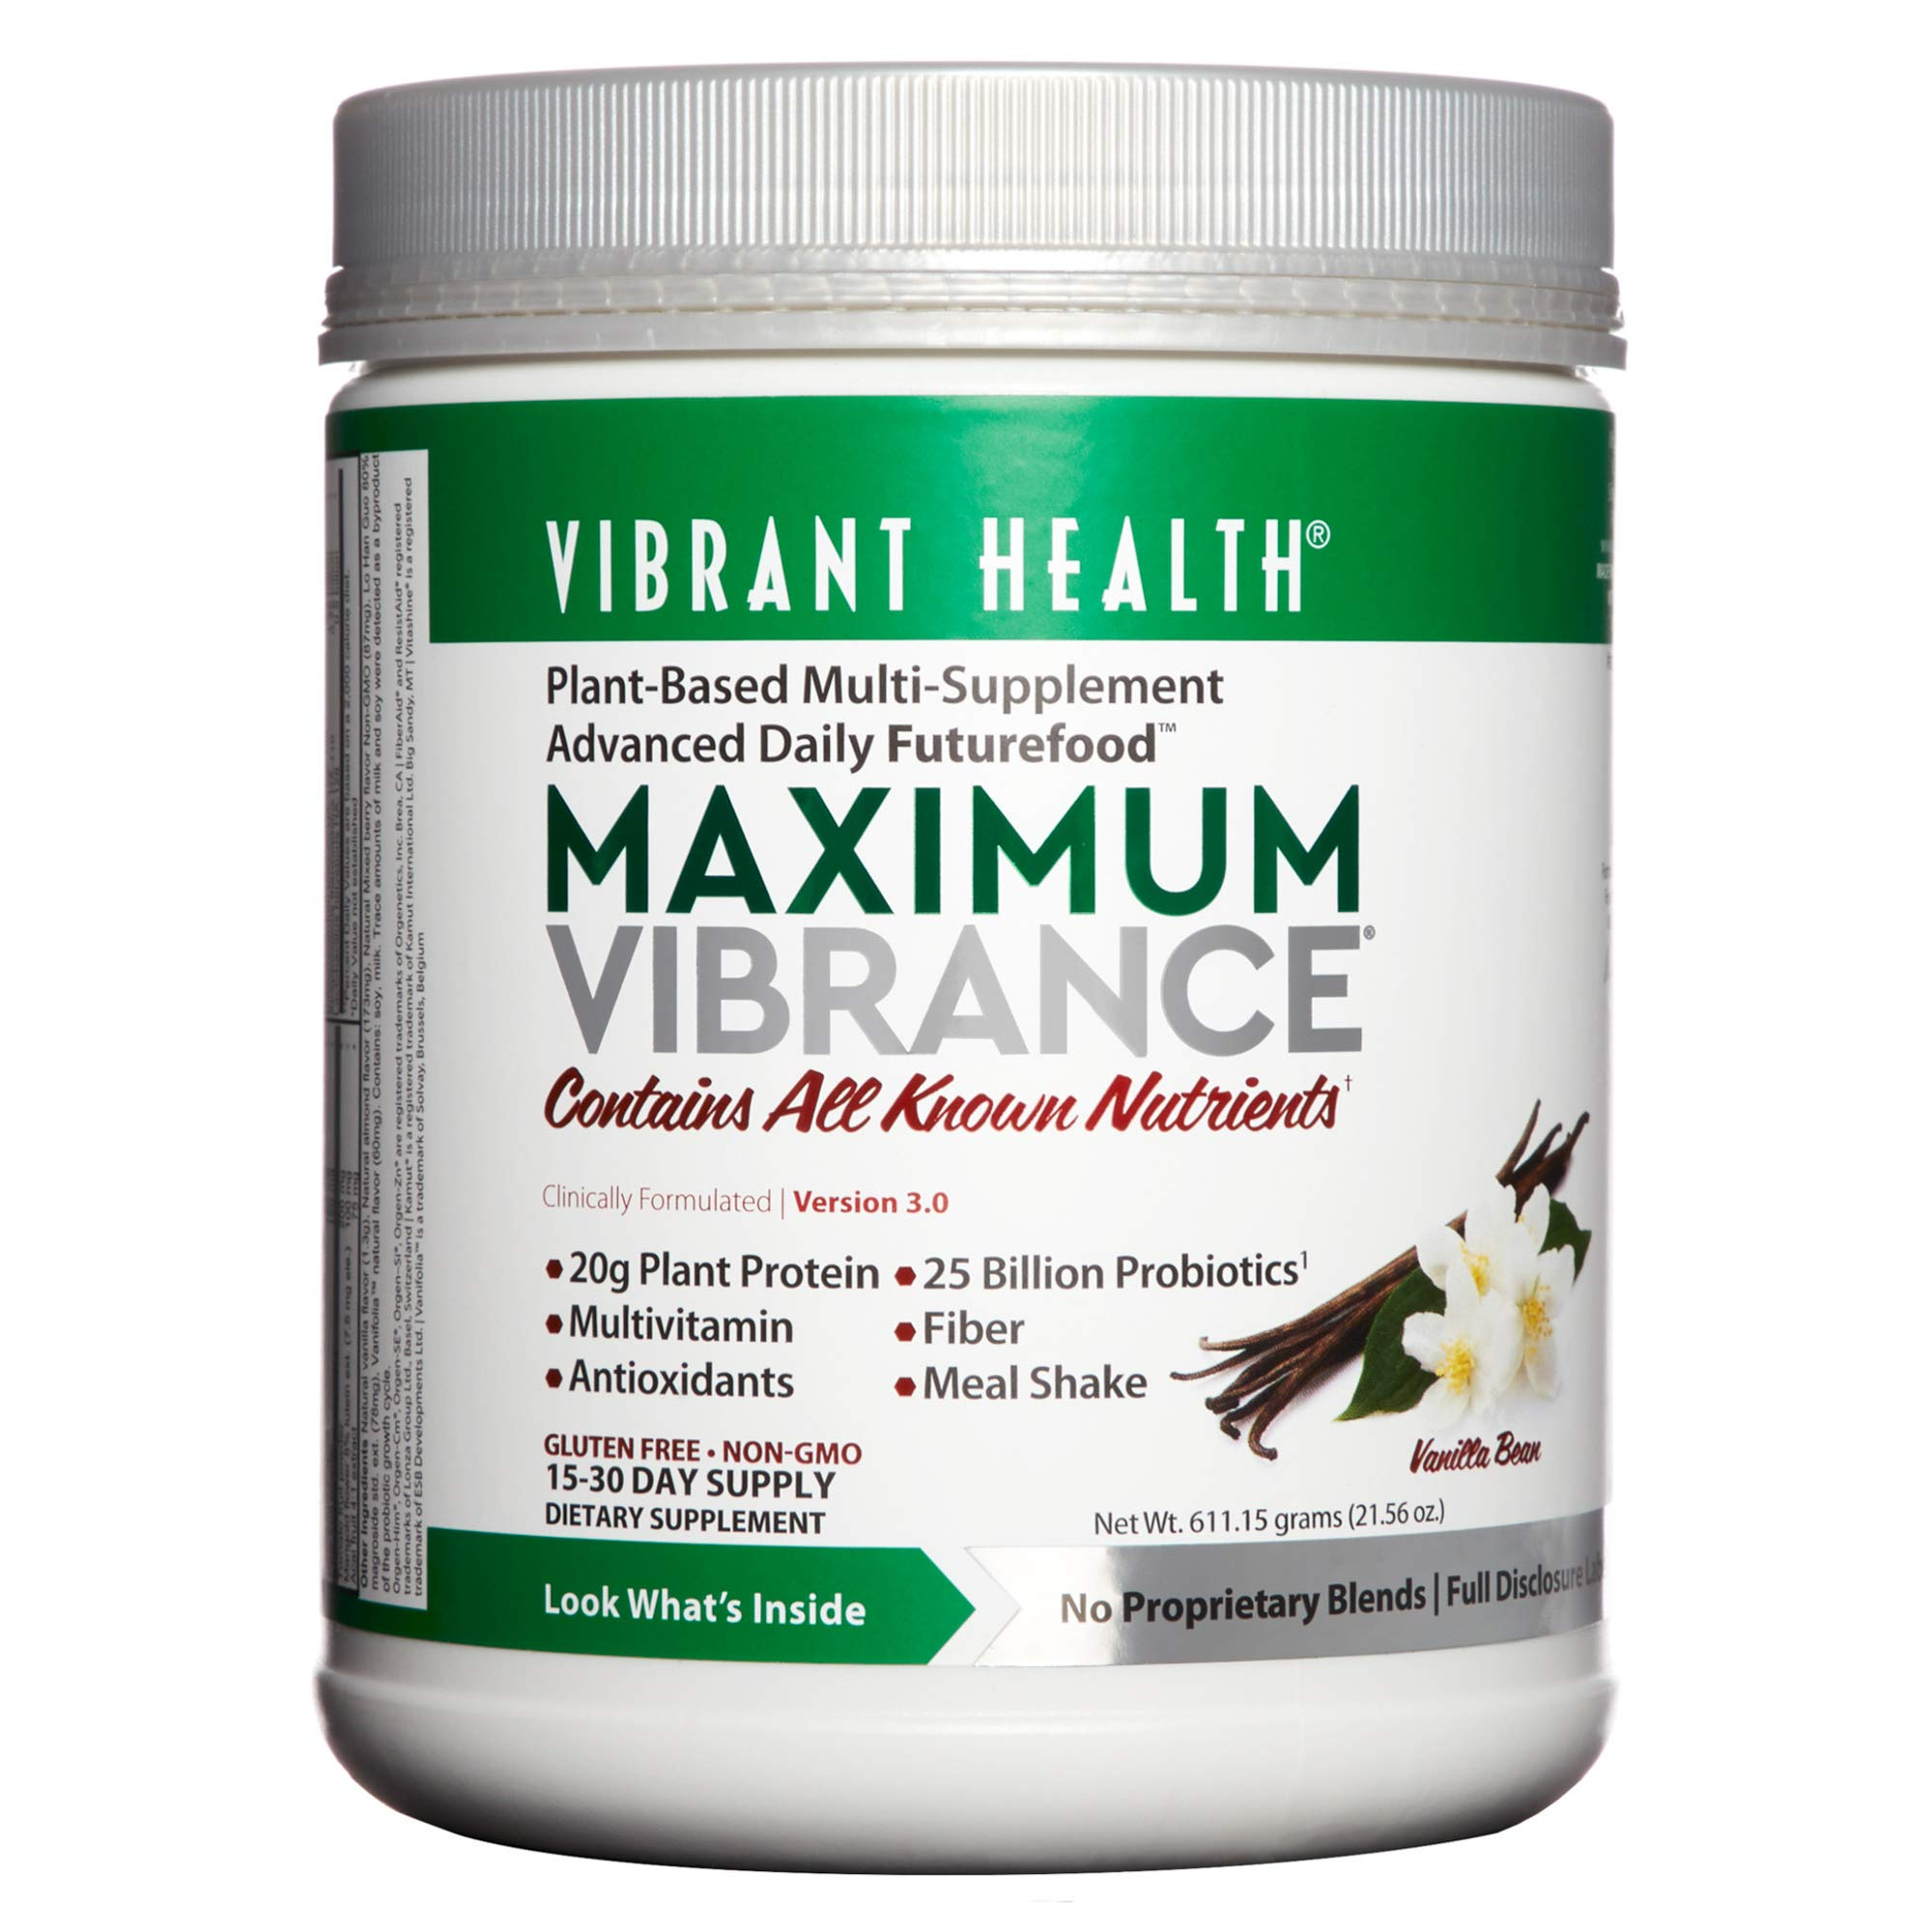 Vibrant Health - Maximum Vibrance, Plant-Based Meal Replacement Rich with Vitamins, Minerals, Antioxidants, and Protein, Gluten Free, Vegetarian, Non-GMO, 15 Servings (FFP) by Vibrant Health